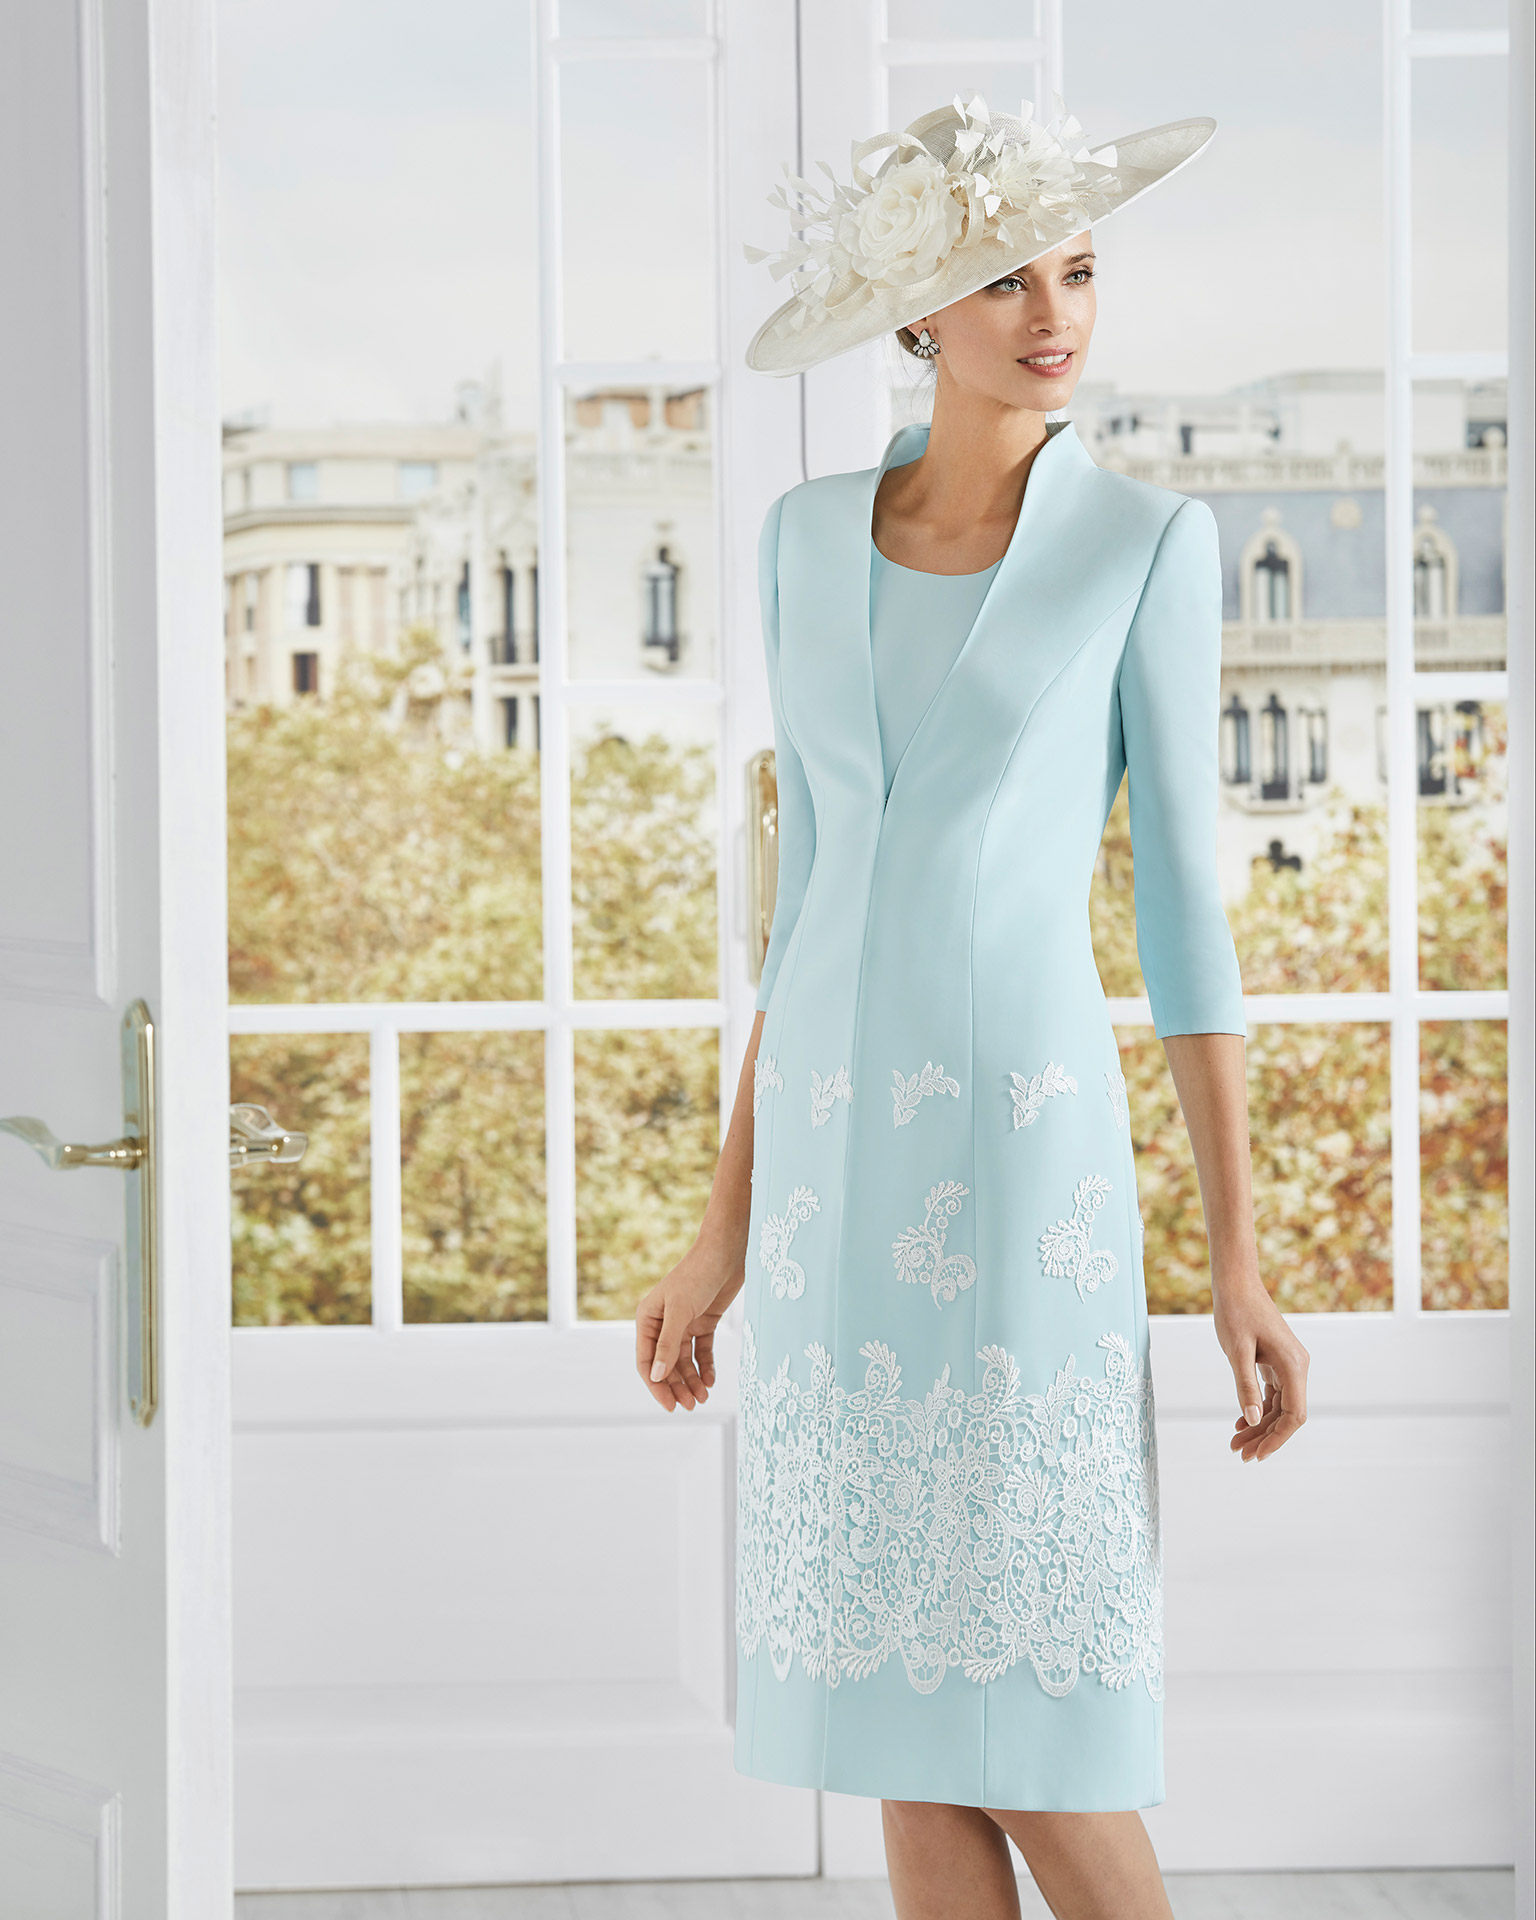 Short cocktail dress in crepe sateen with lace on the skirt. Round neckline and short sleeves. With long jacket in crepe sateen with lace. 2020 COUTURE CLUB Collection.